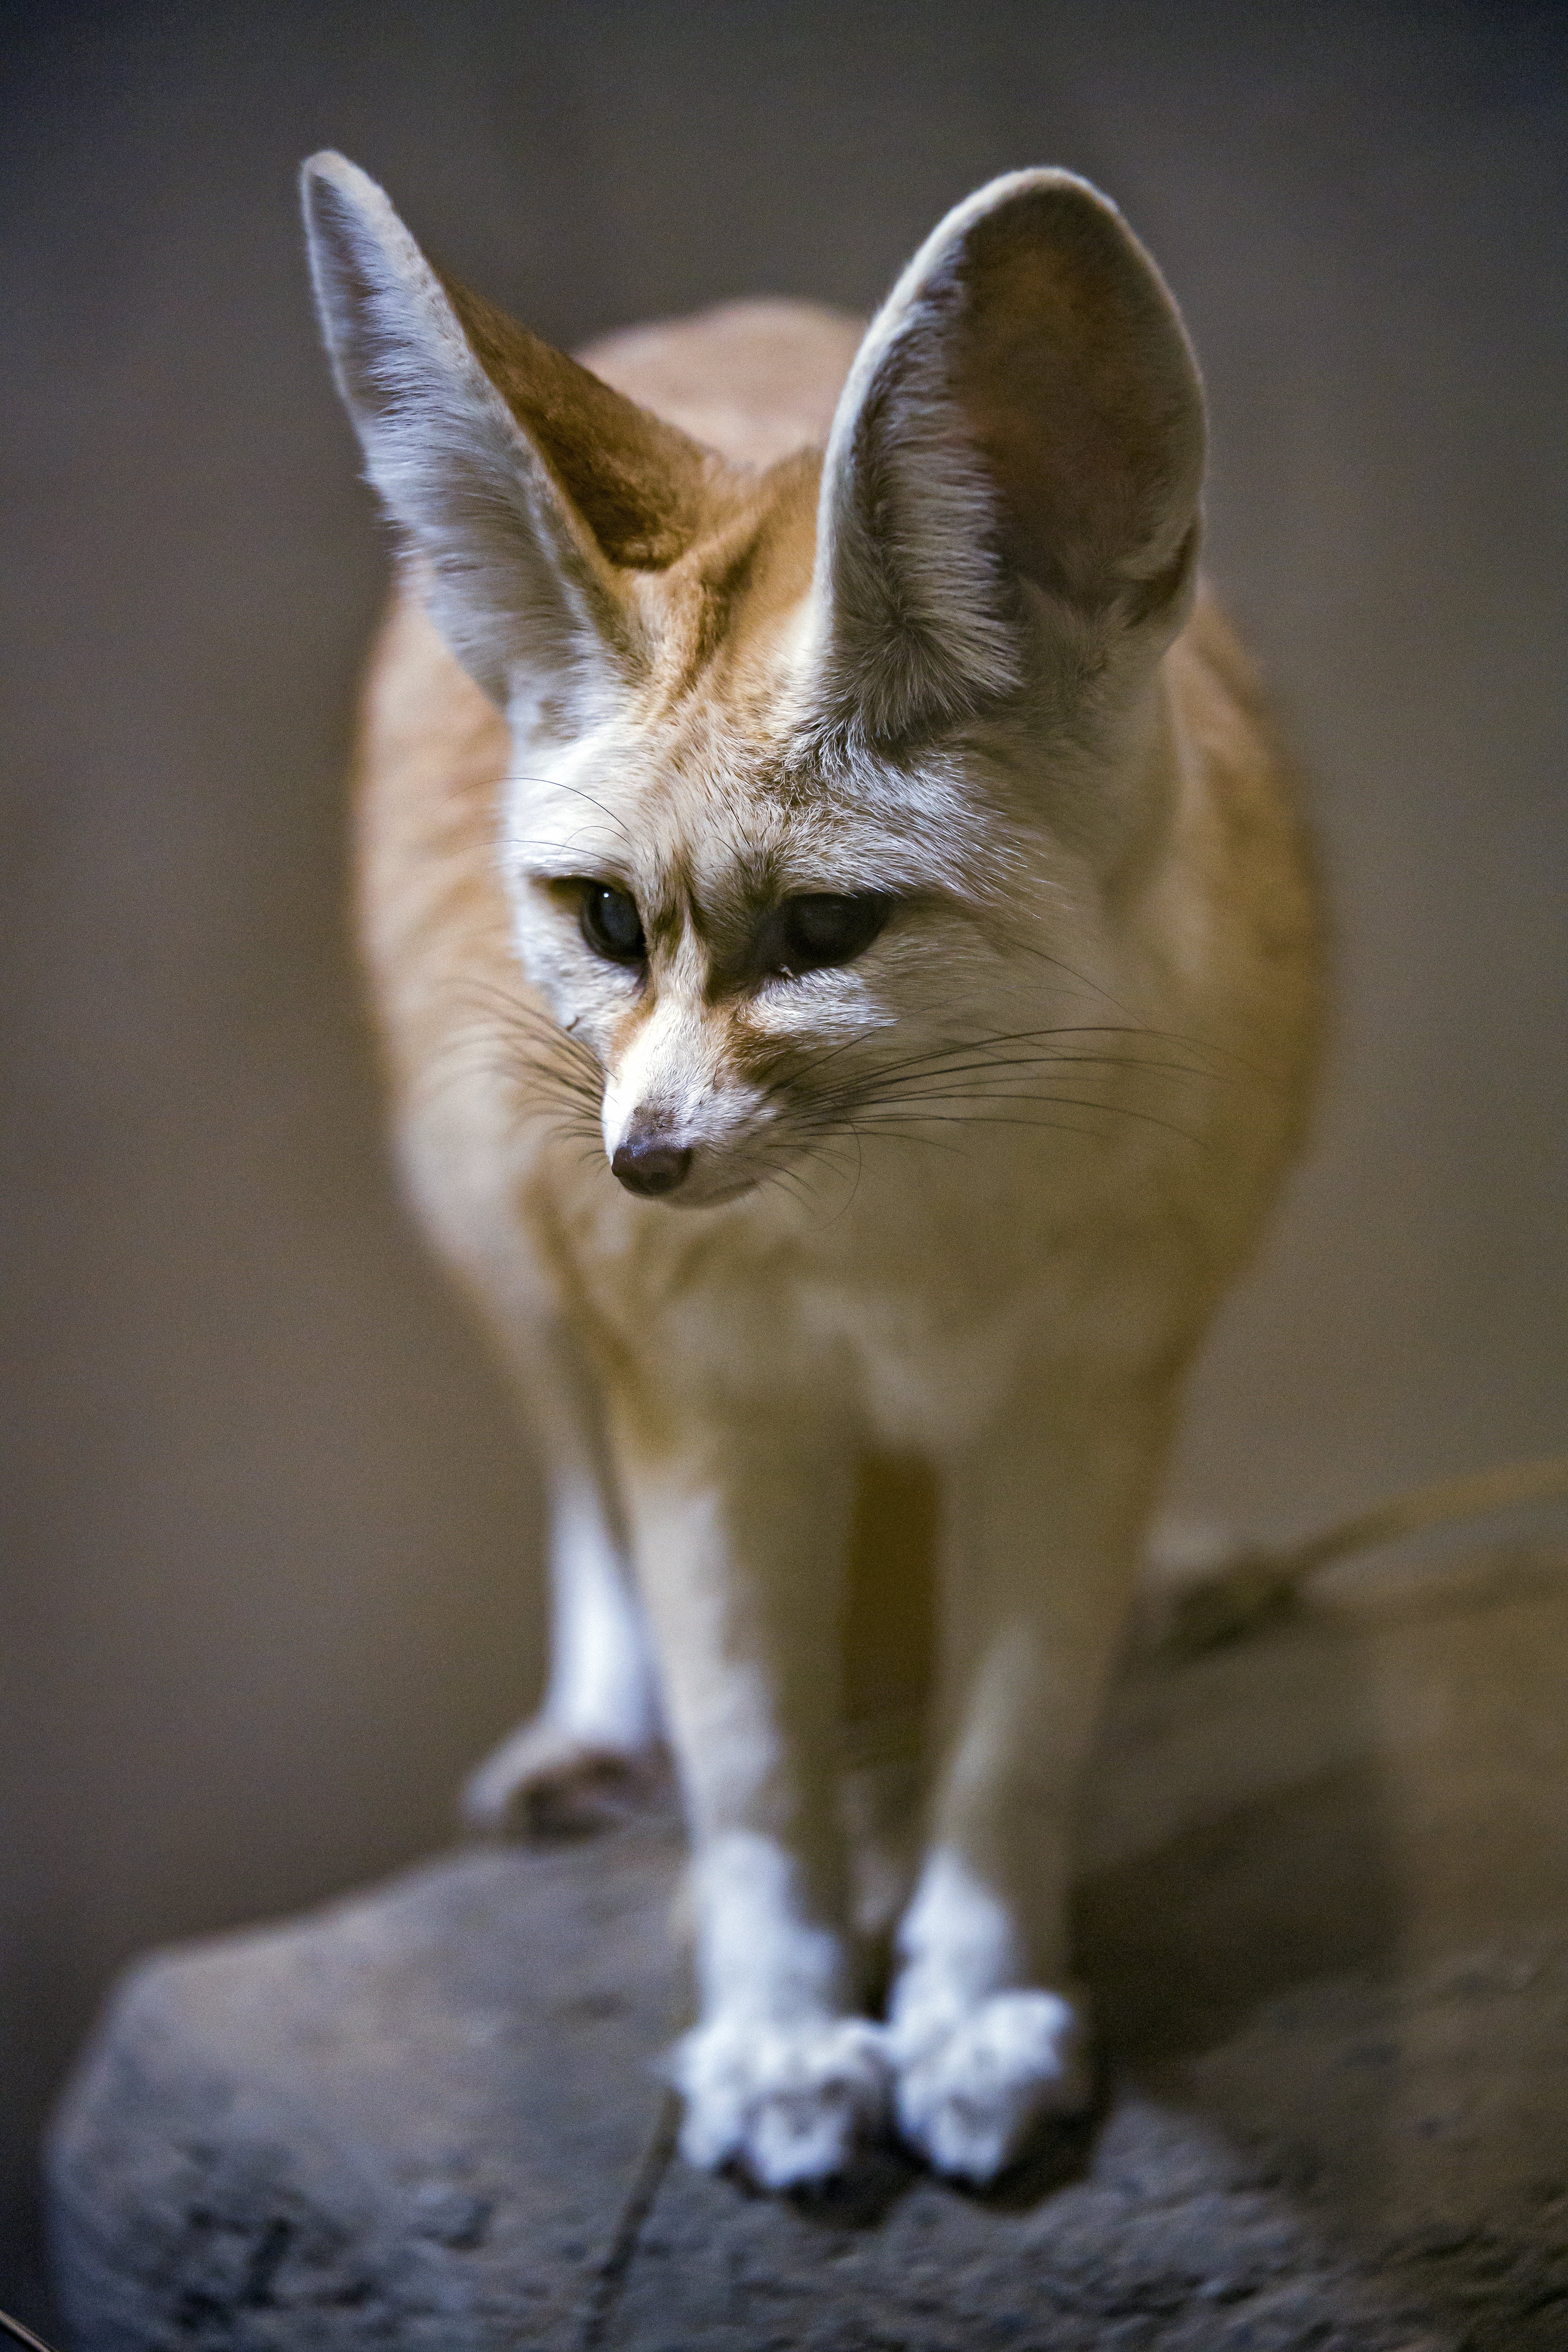 146867 download wallpaper Animals, Fenech, Fox, Nice, Sweetheart, Animal screensavers and pictures for free